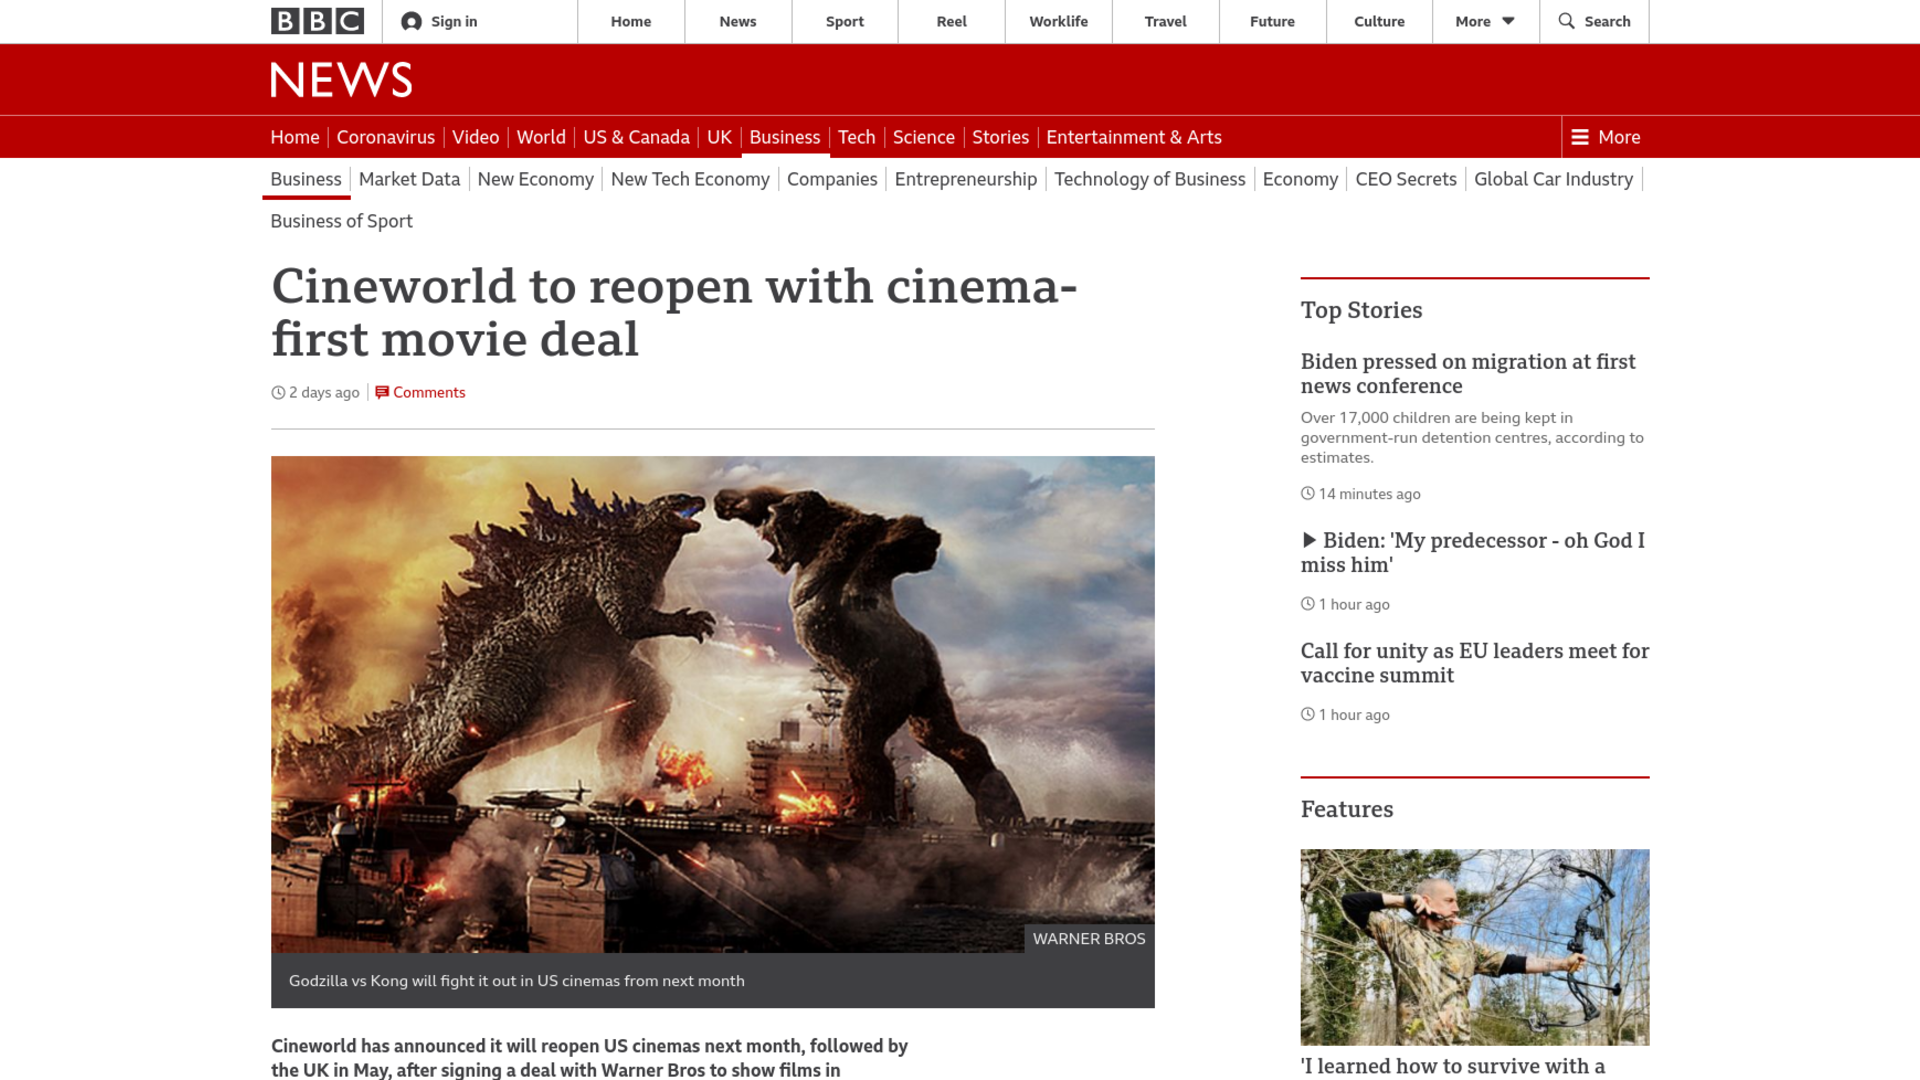 Fairness Rocks News Cineworld to reopen with cinema-first movie deal